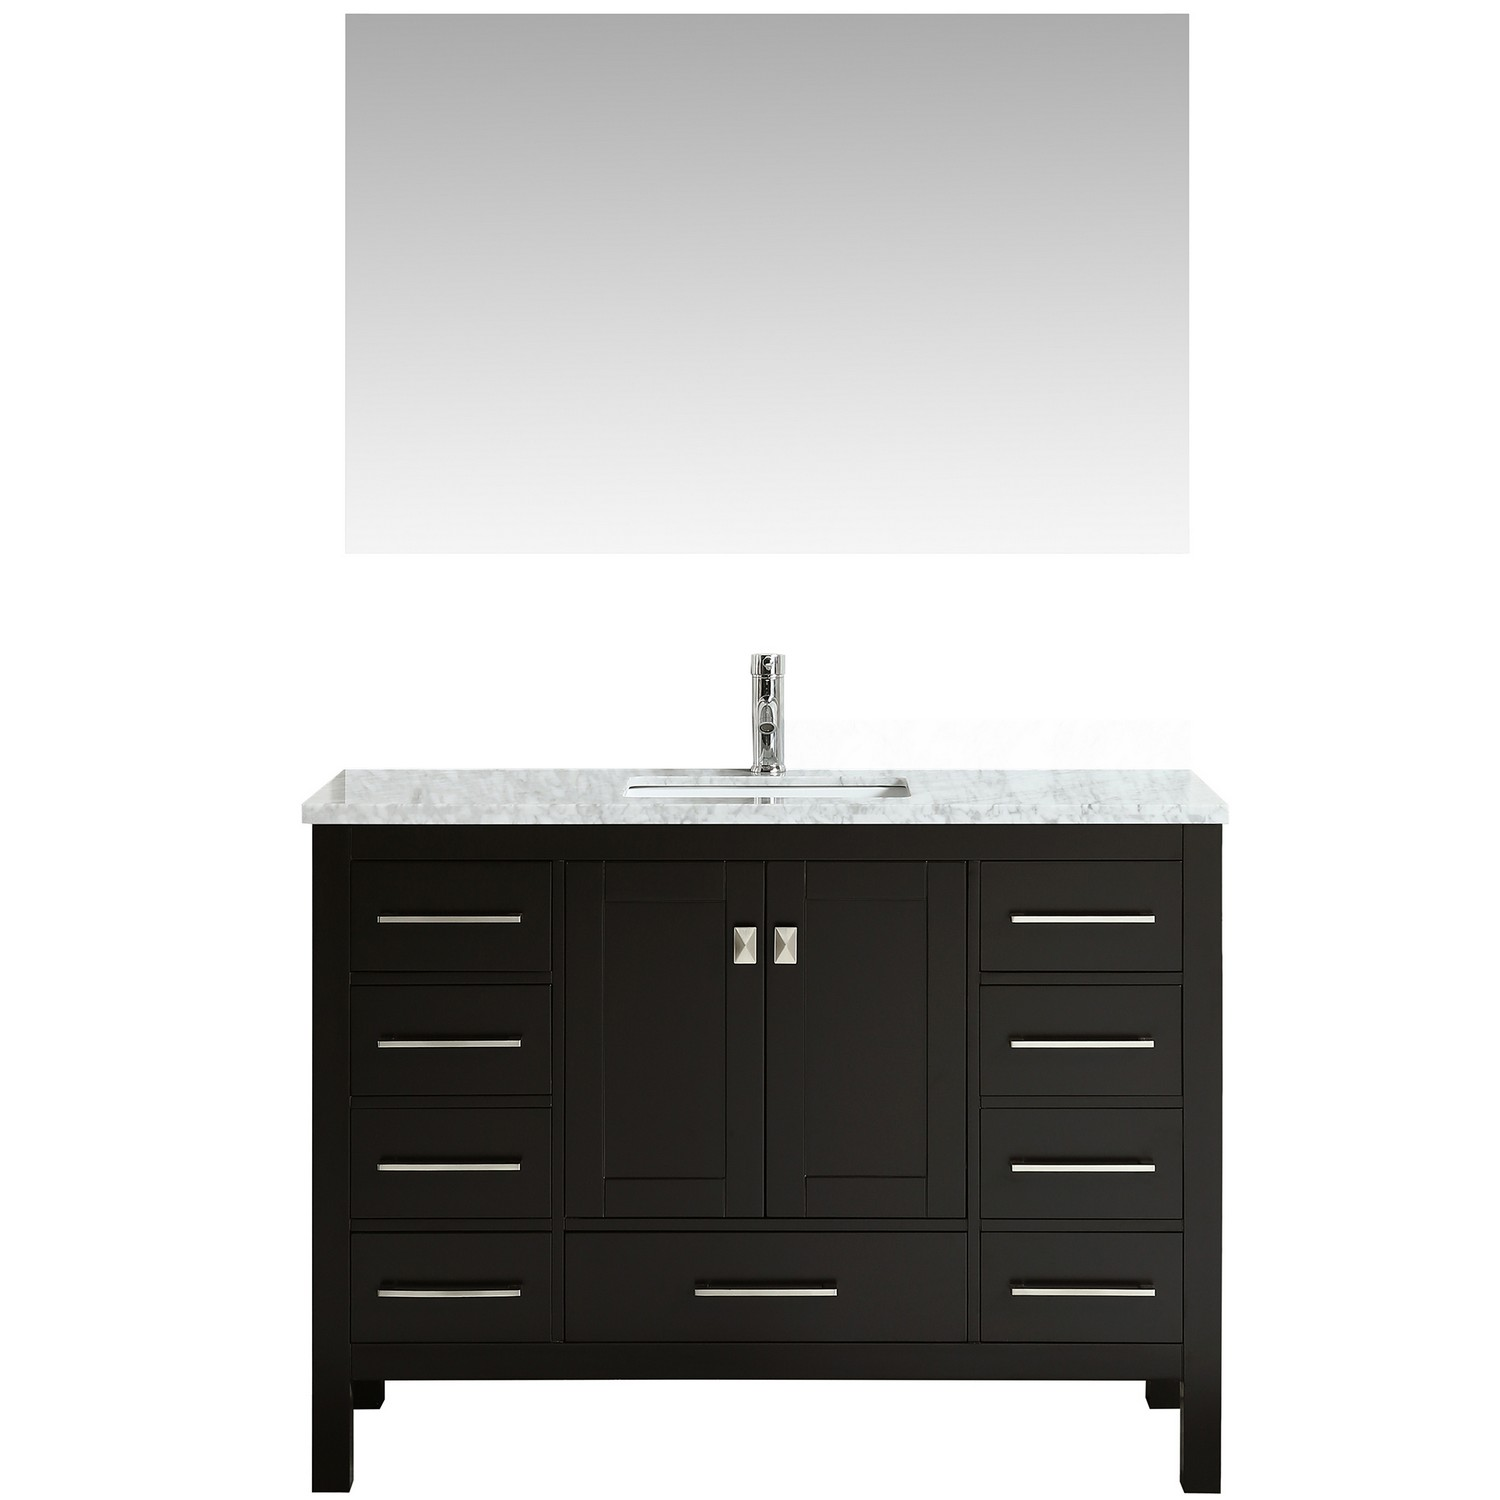 "EVVN412 48ES A Main - Eviva Aberdeen 48"" Transitional Espresso Bathroom Vanity with White Carrera Countertop"